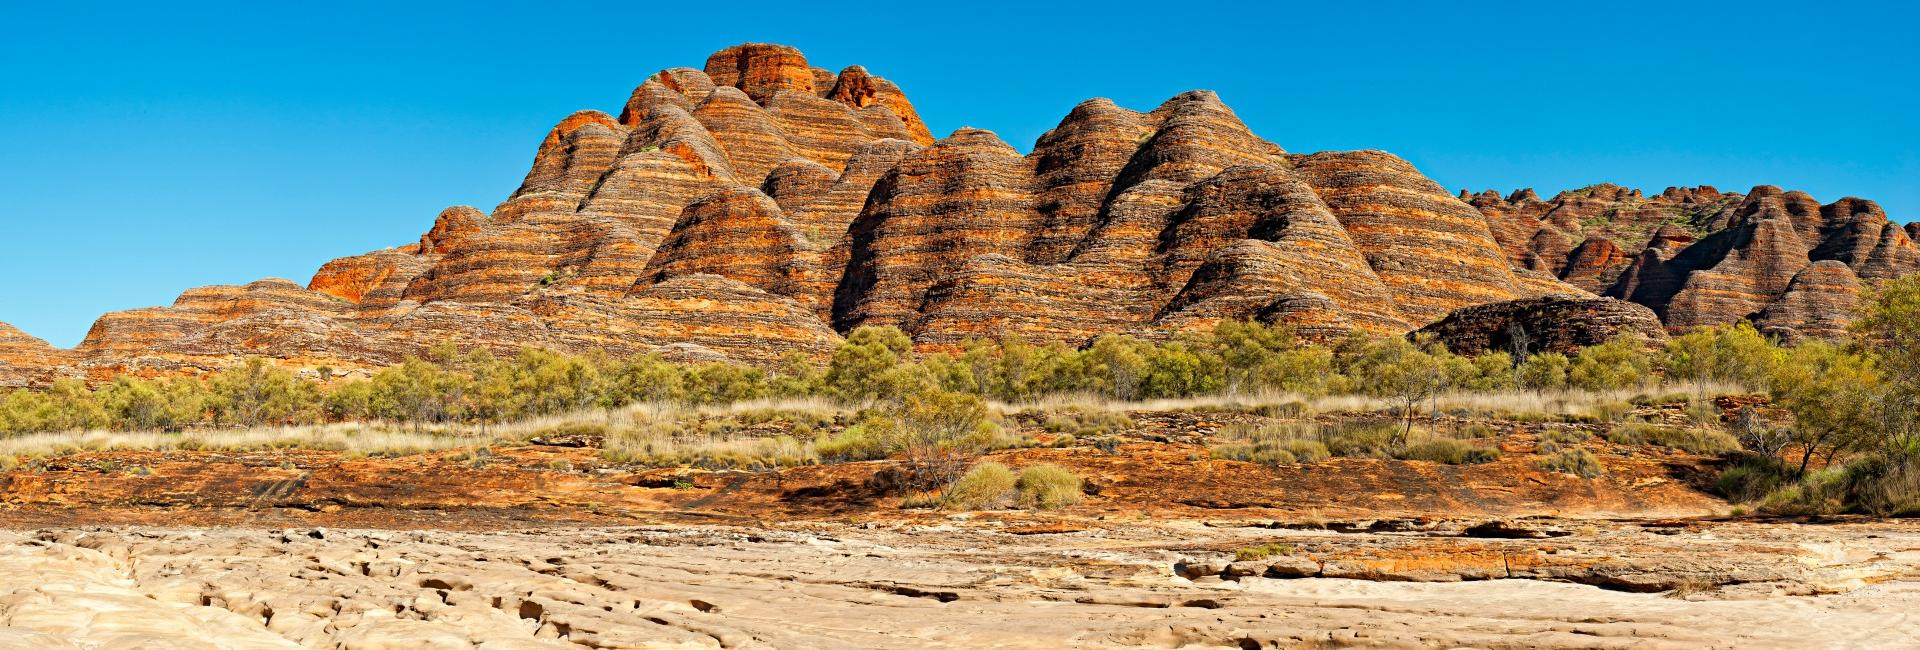 content/images/Bungle_bungles_-_tours_from_Kununurra.jpg